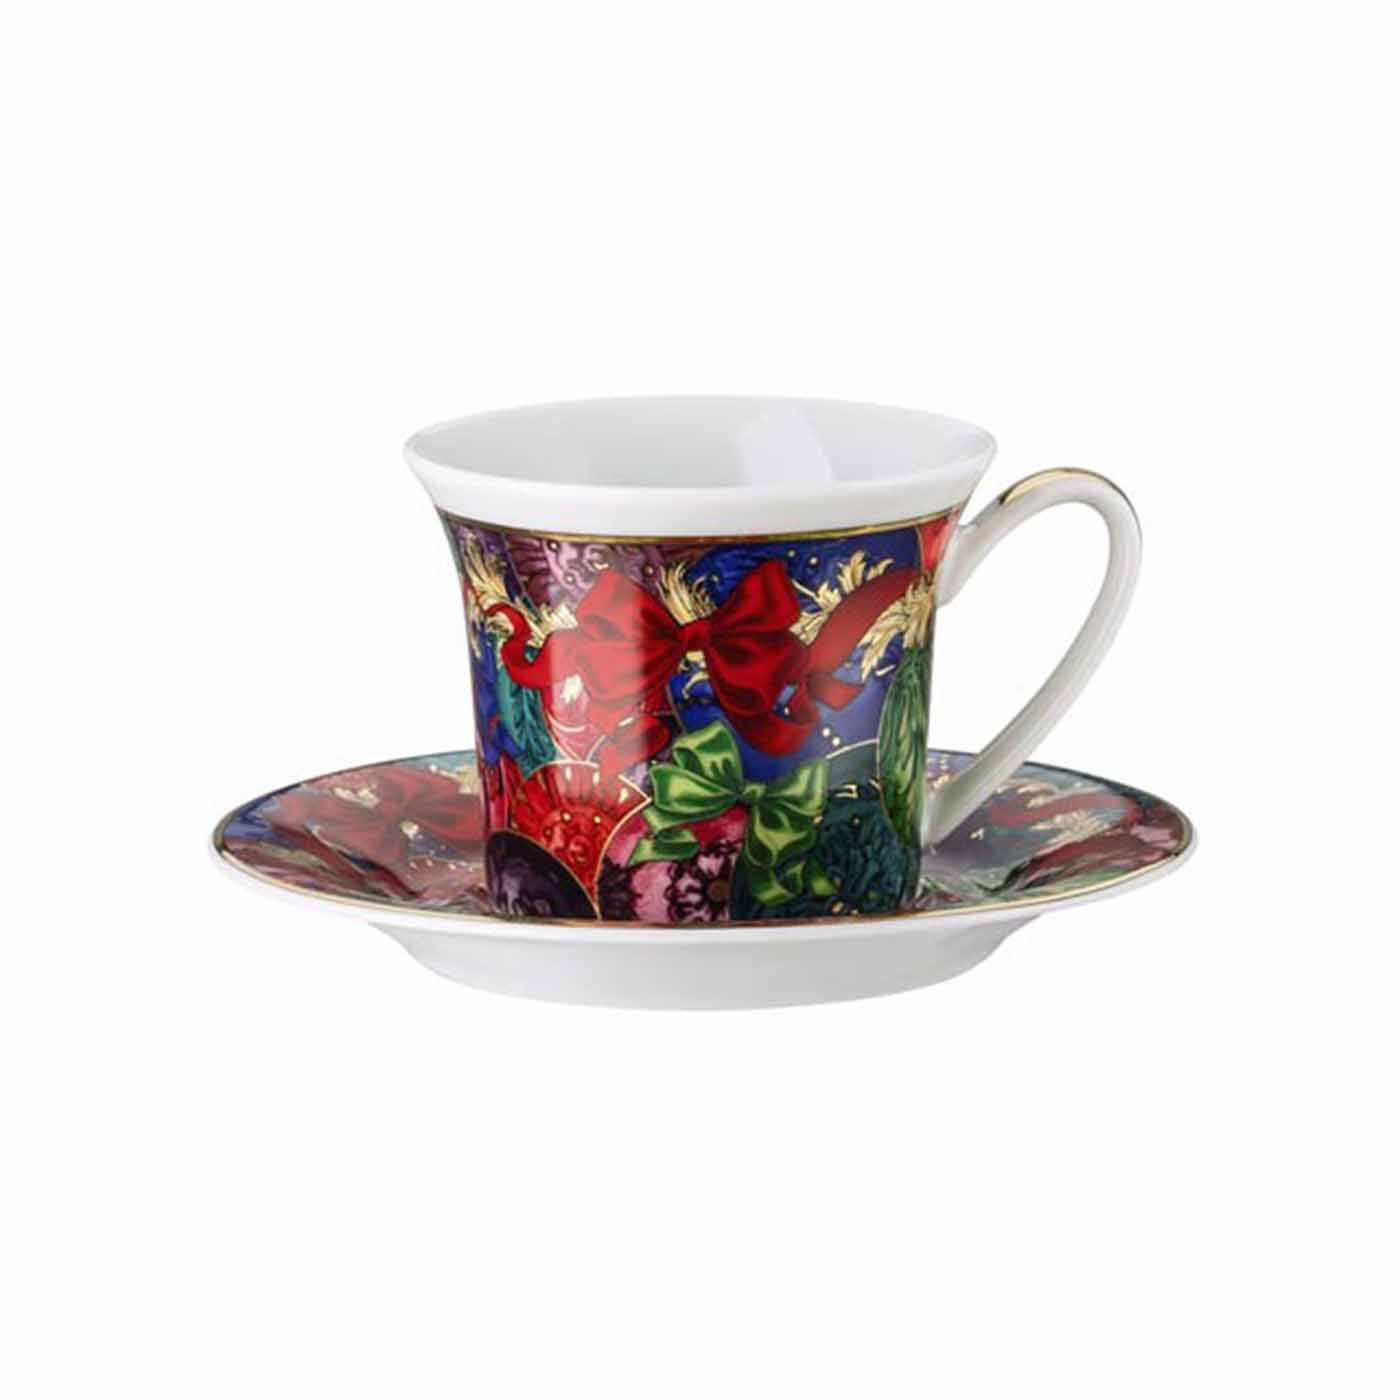 Reflections of Holidays Ad Cup u0026 Saucer 4 1/4 in. 3 oz.  sc 1 st  Gracious Style & Rosenthal Reflections of Holidays Dinnerware | Gracious Style